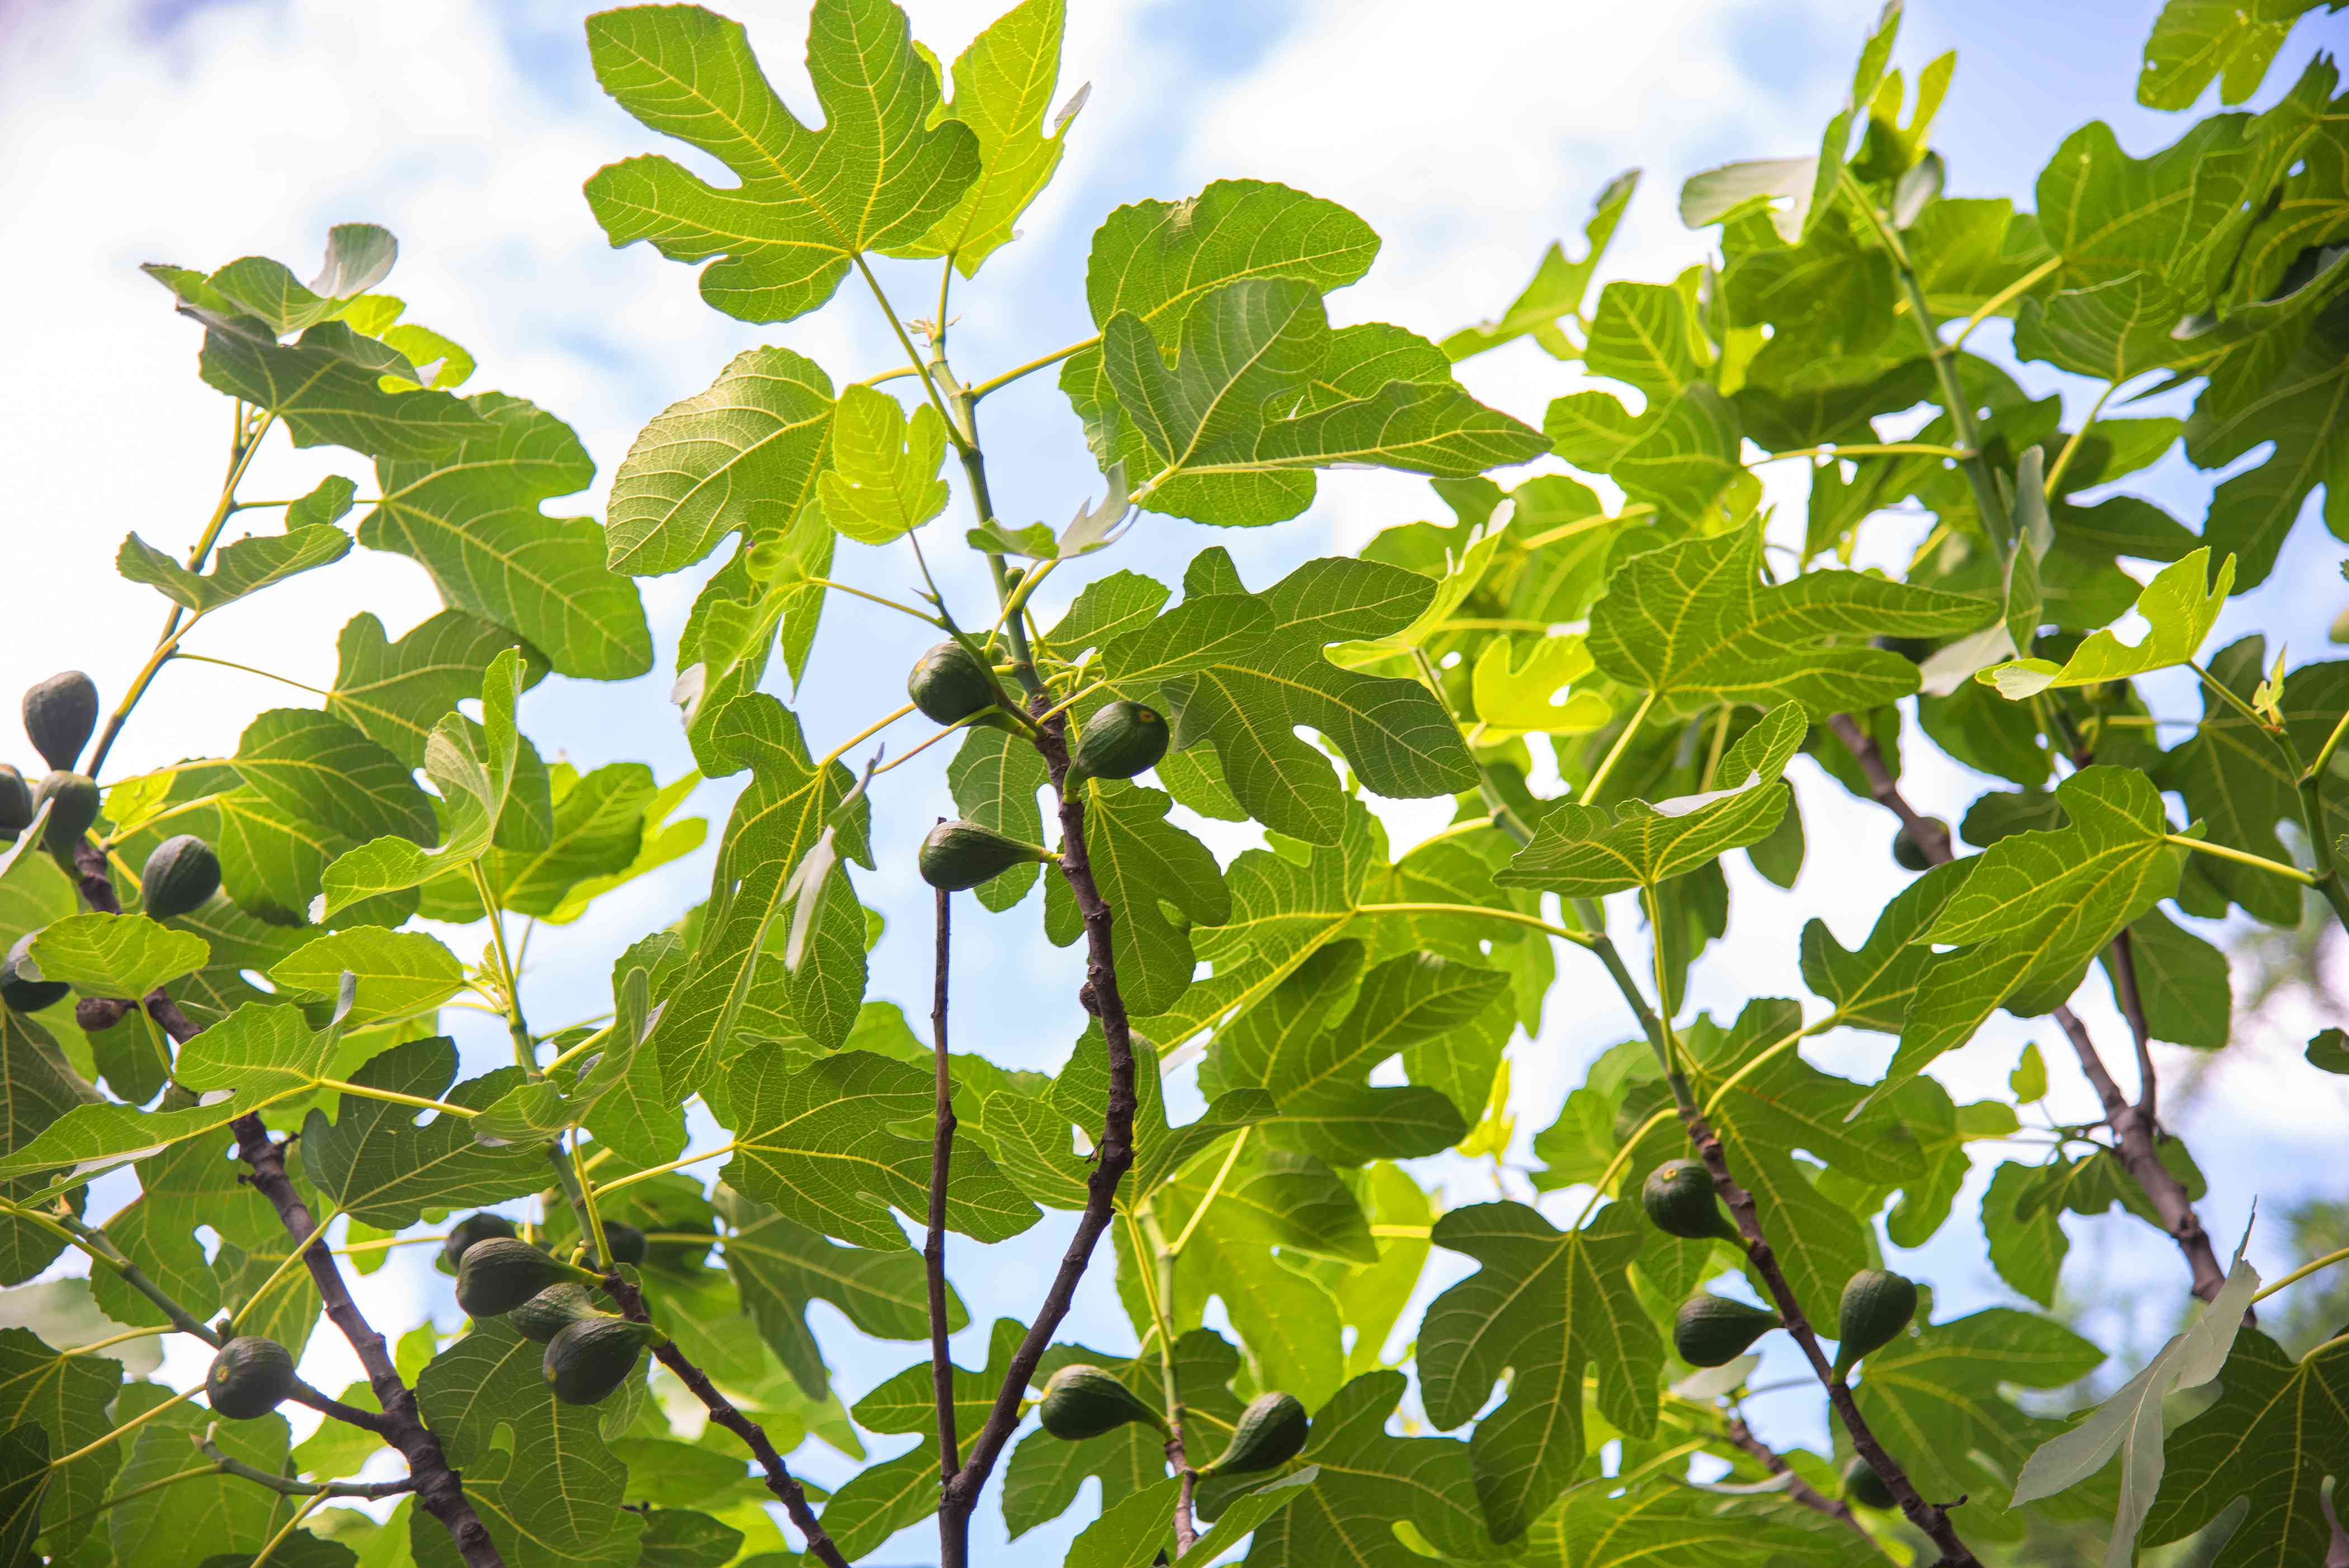 Organic fig tree with large lobed leaves on thin stems and small figs hanging